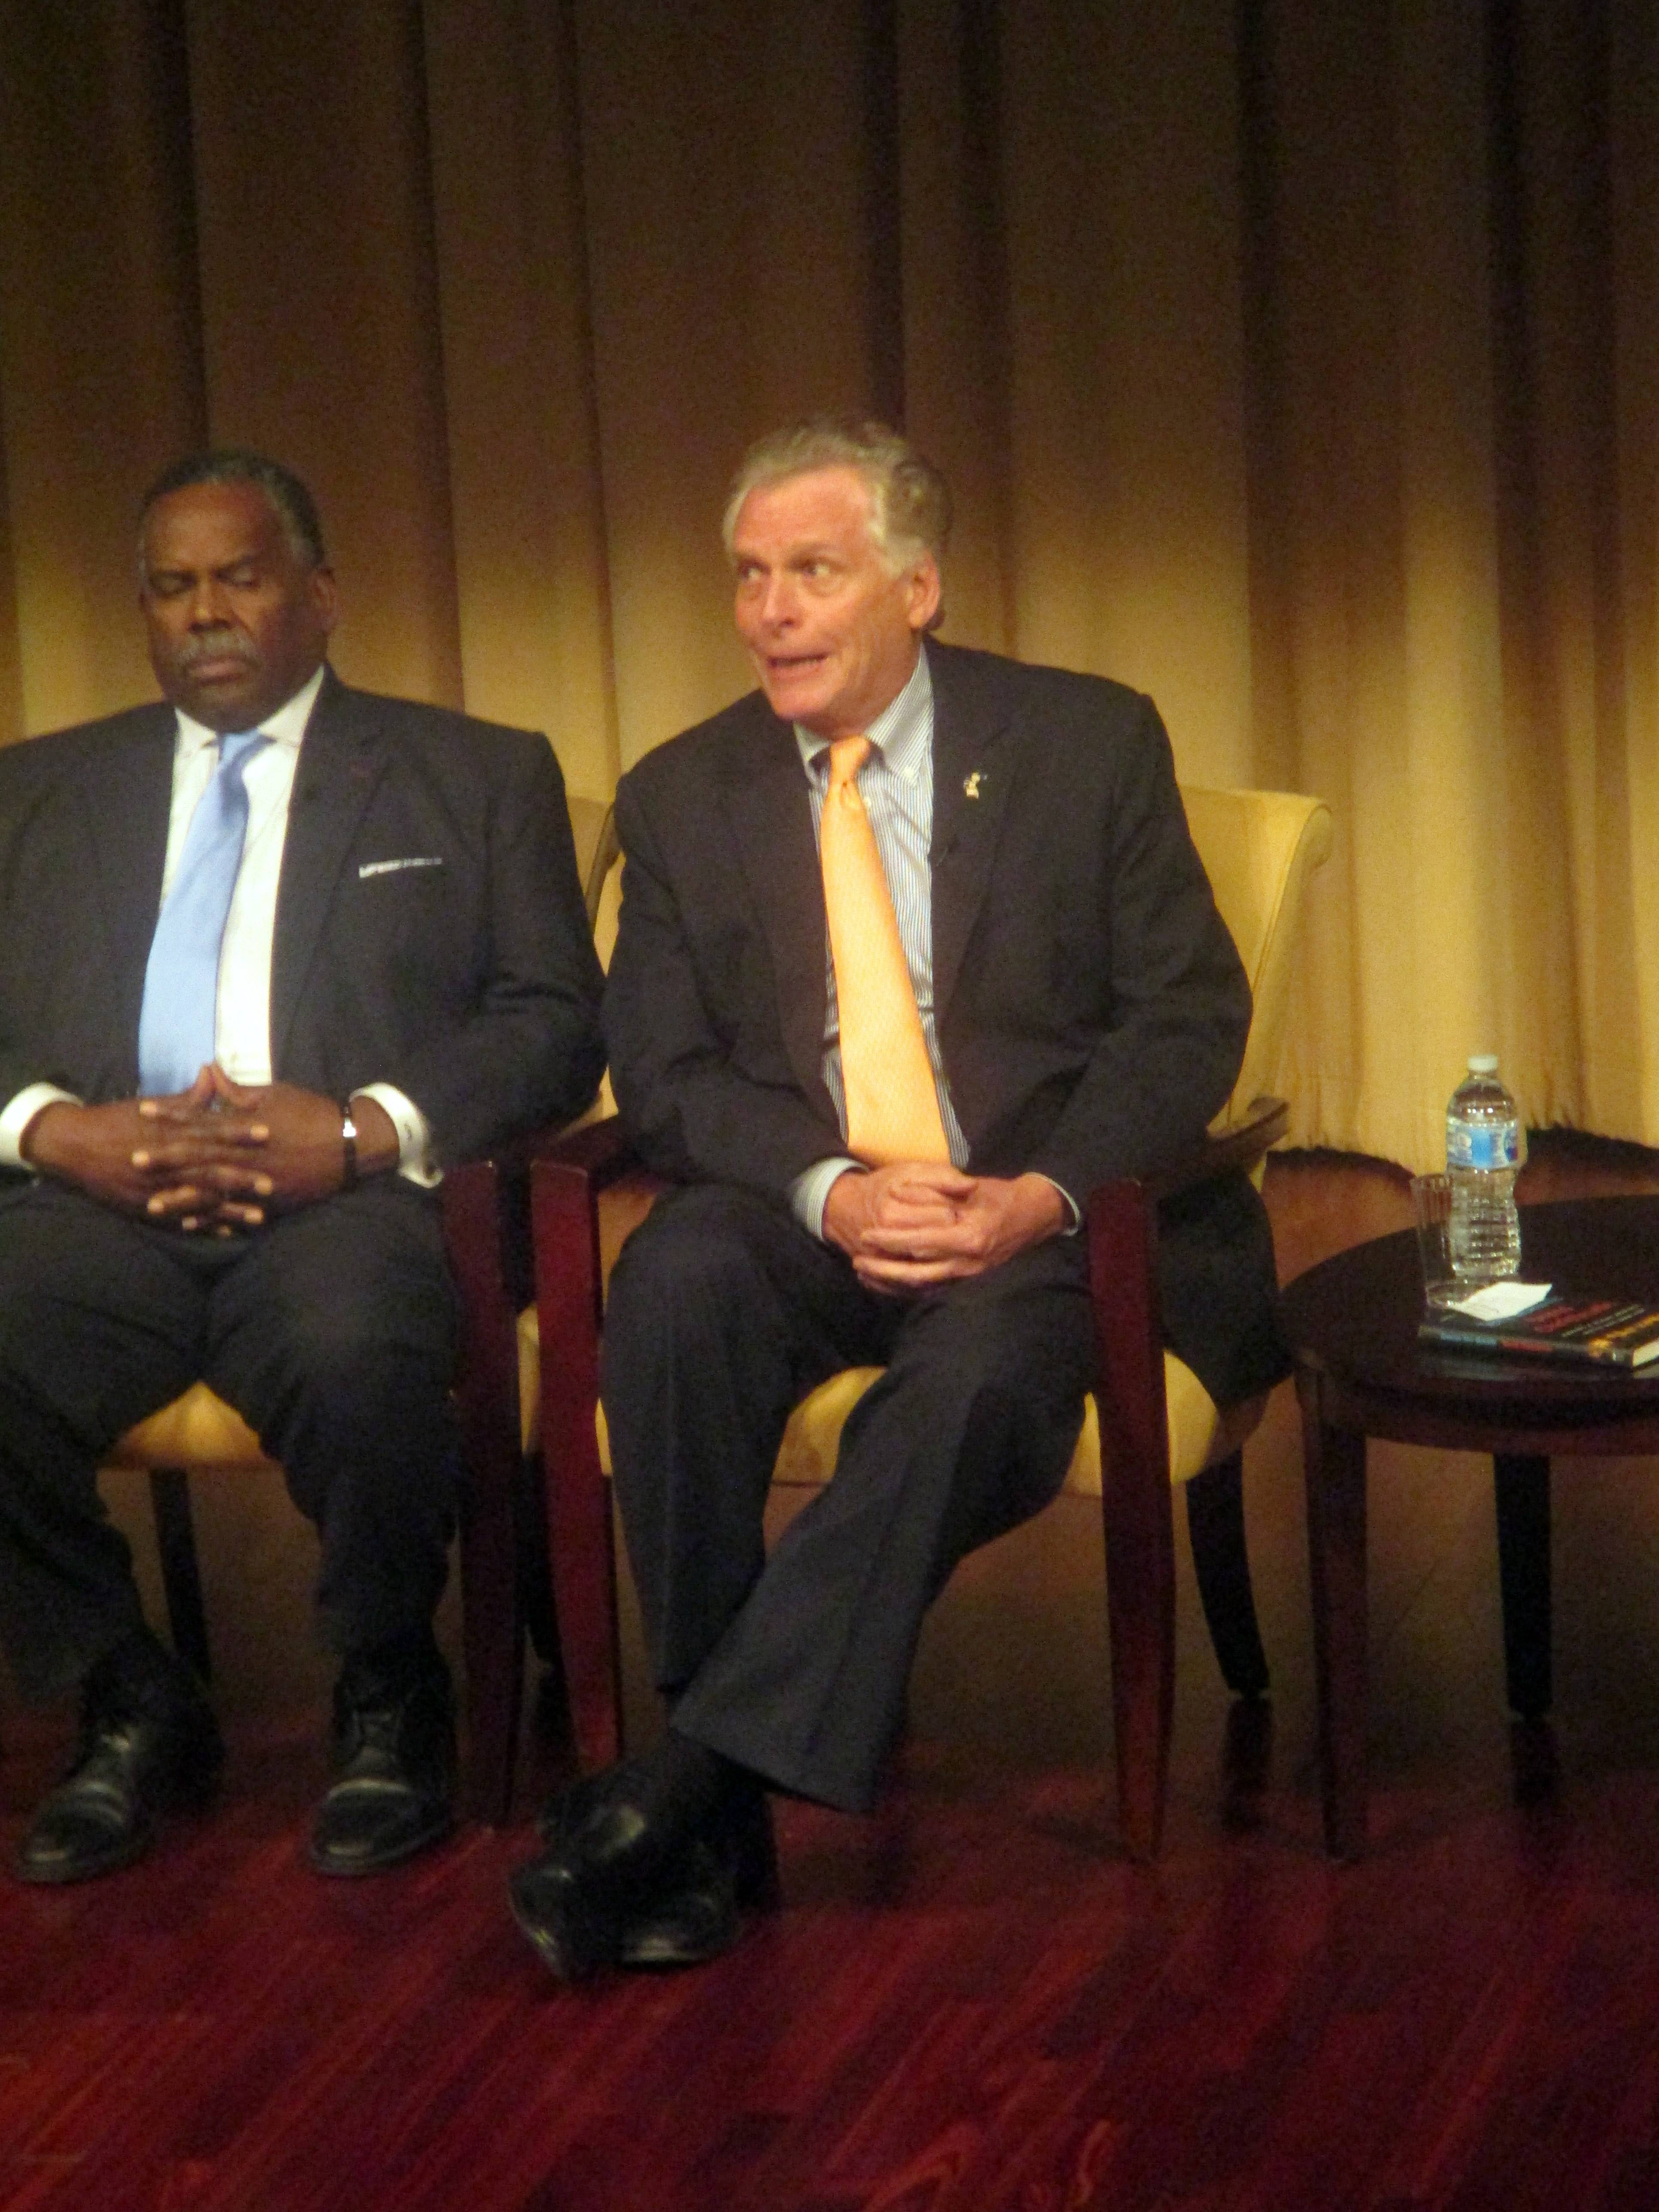 Terry McAuliffe at Beyond Charlottesville at National Archives and Records Administration